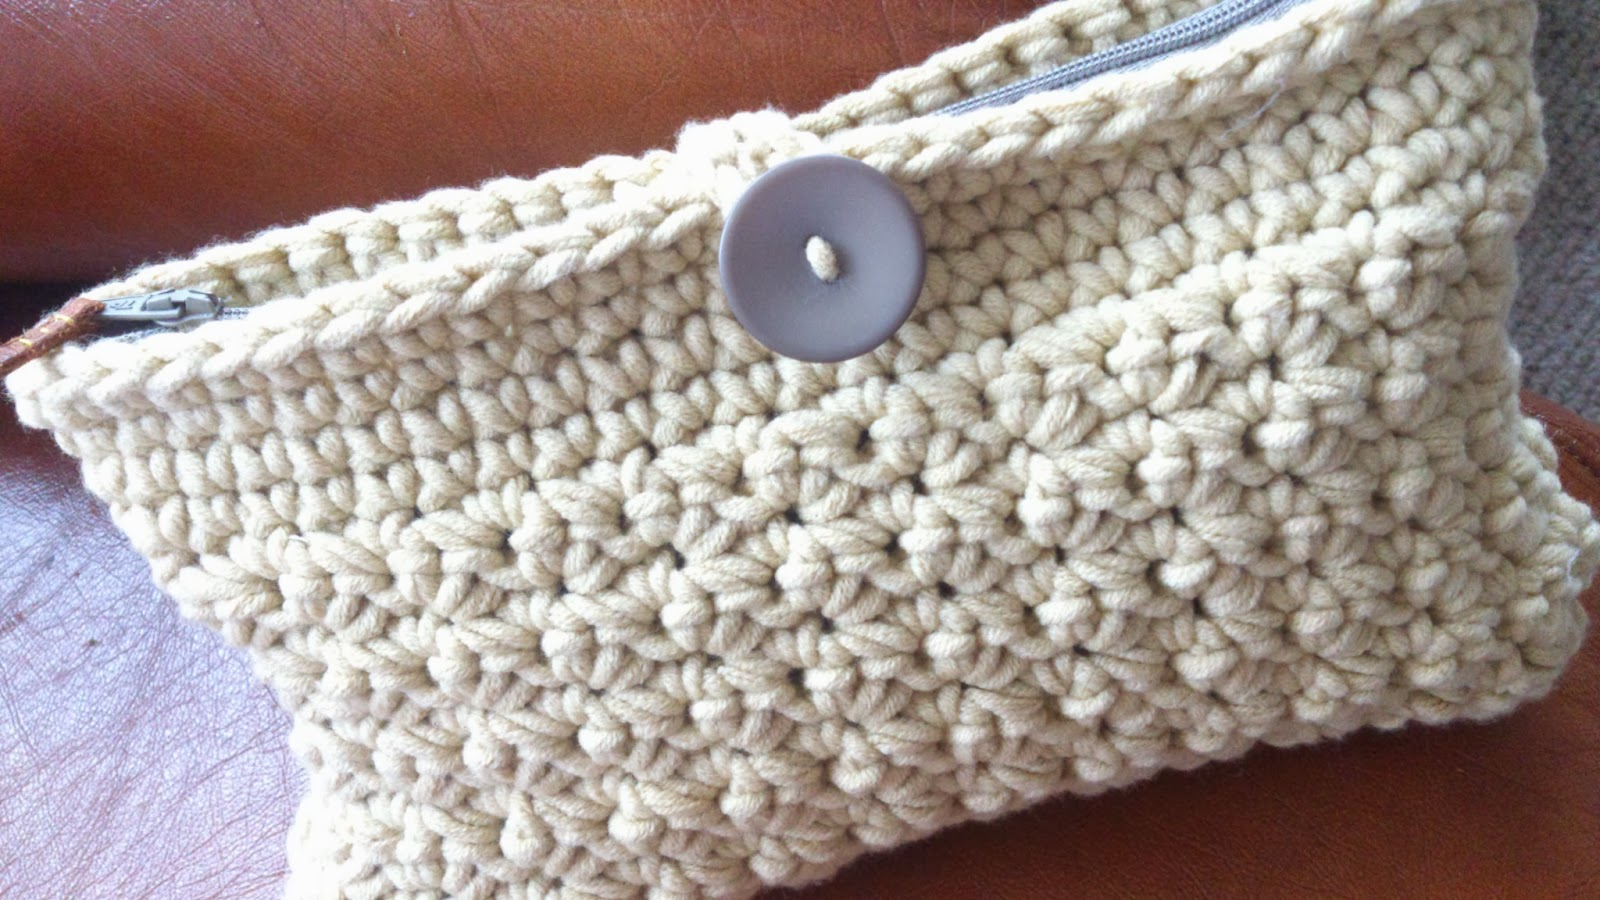 Crochet Clutch Lace Pattern : Of Ones Own Making: Crochet. Not just for Grandma: Crochet Clutch Bag